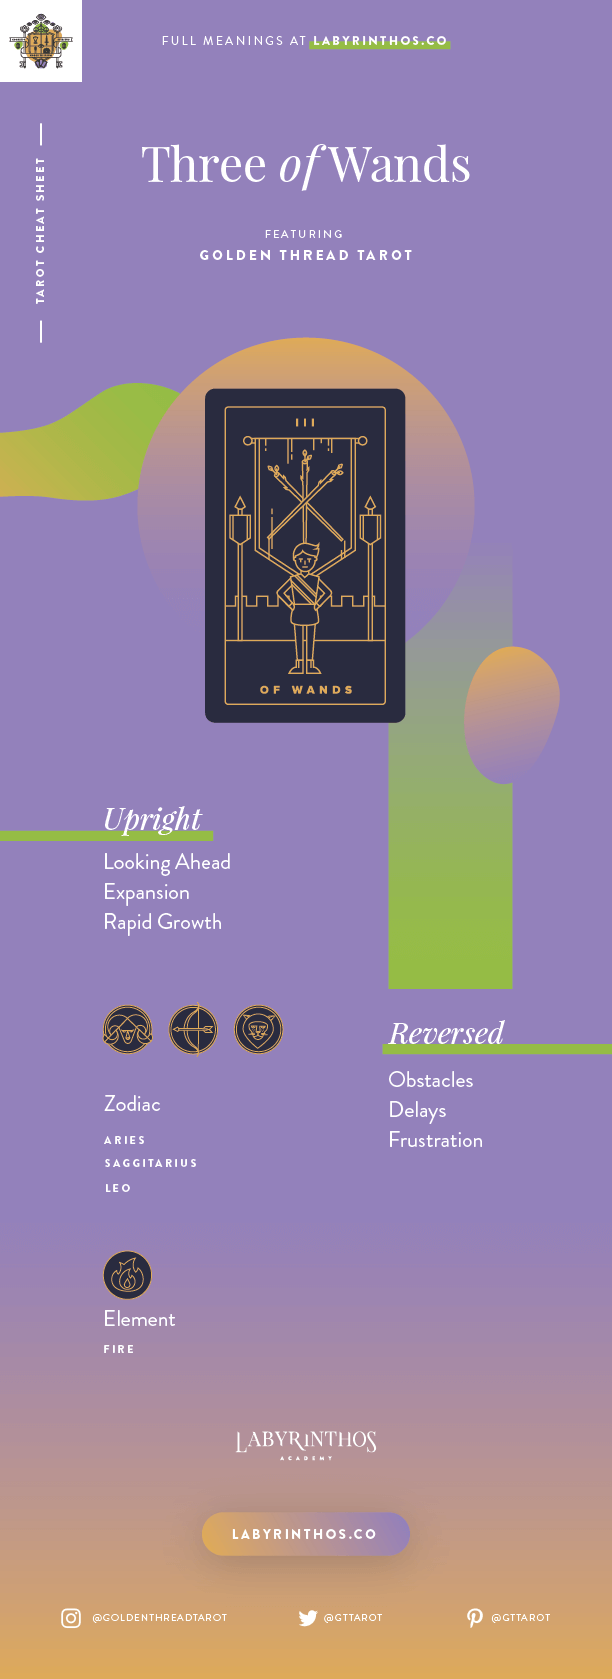 Three of Wands Meaning - Tarot Card Meanings Cheat Sheet